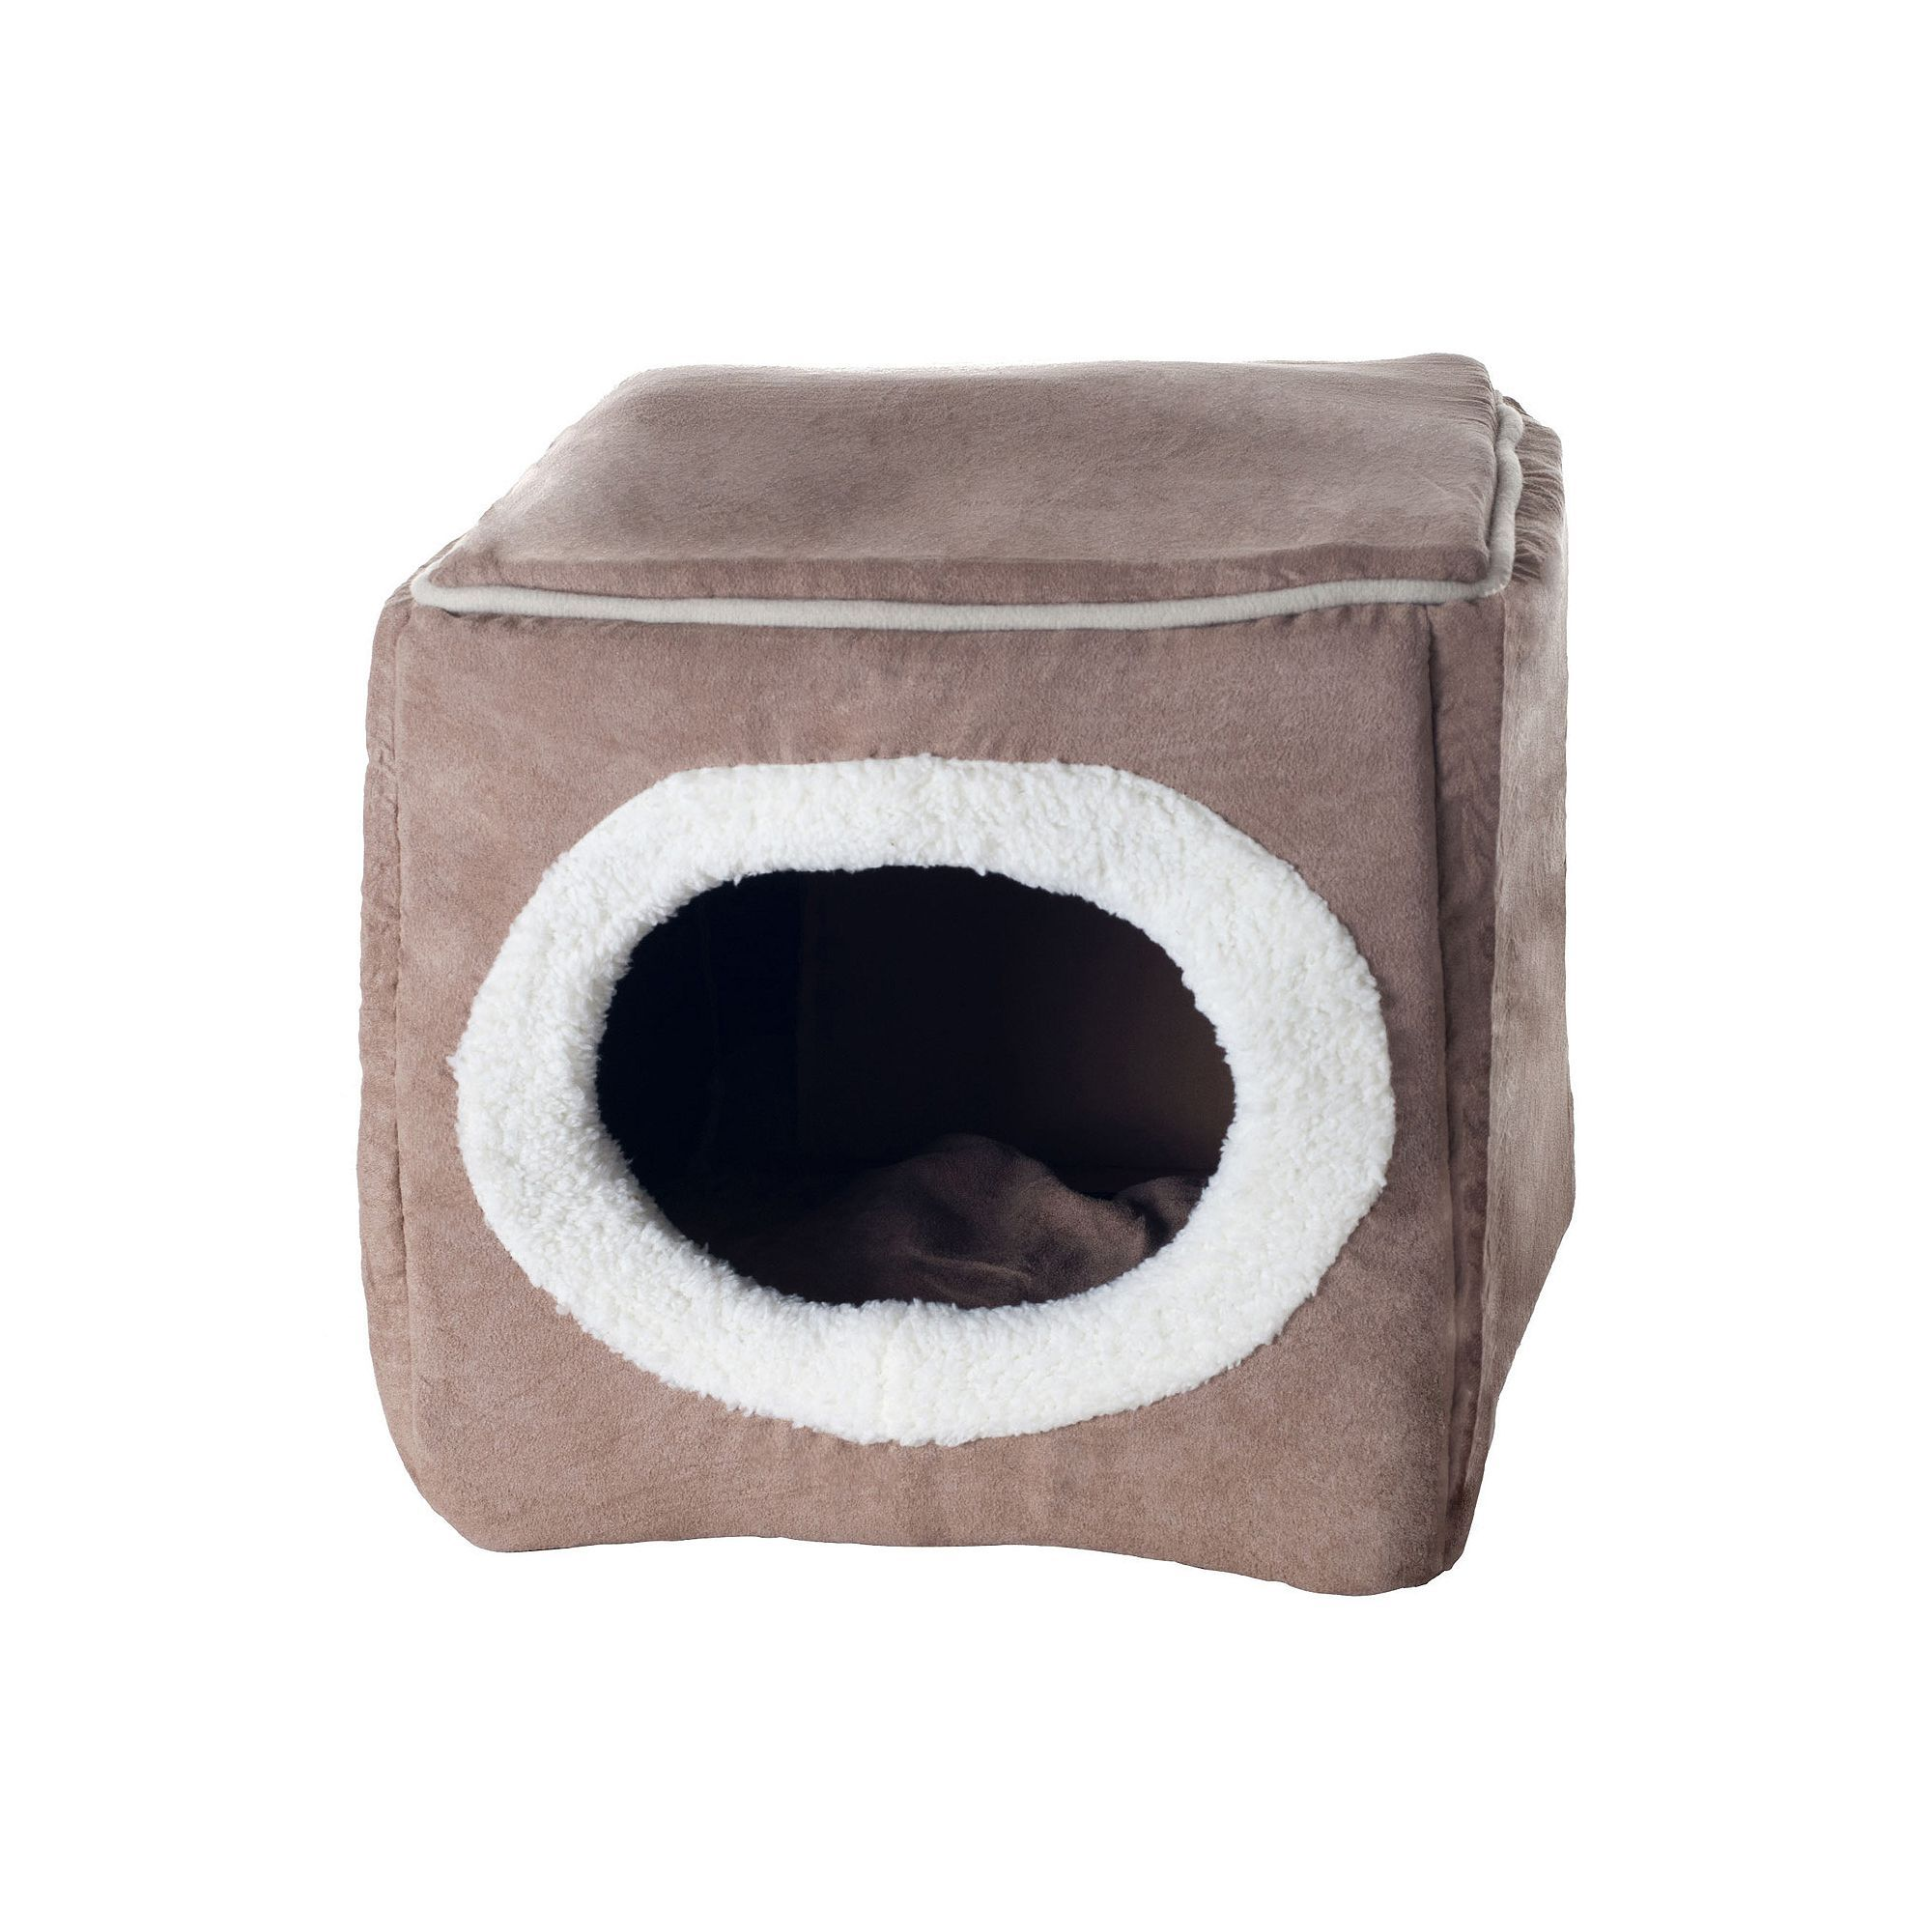 PAW Cozy Cave Enclosed Pet Bed 12'' x 13.5'', Brown